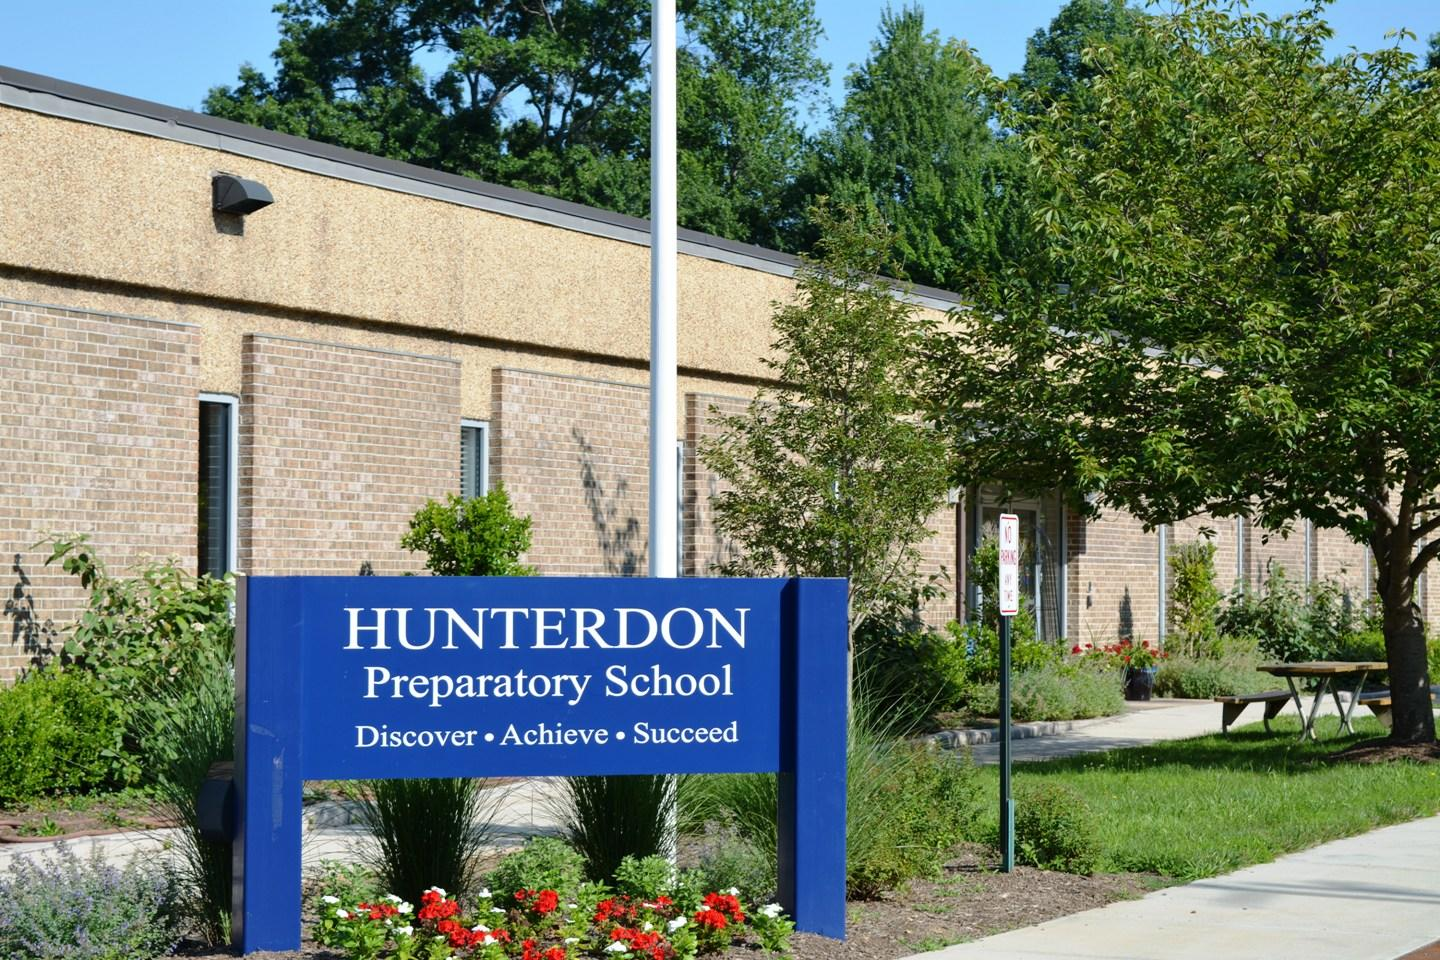 A photograph of the front of Hunterdon Preparatory School including the School Sign and motto: Hunterdon Preparatory School. Discover, Achieve, Succeed